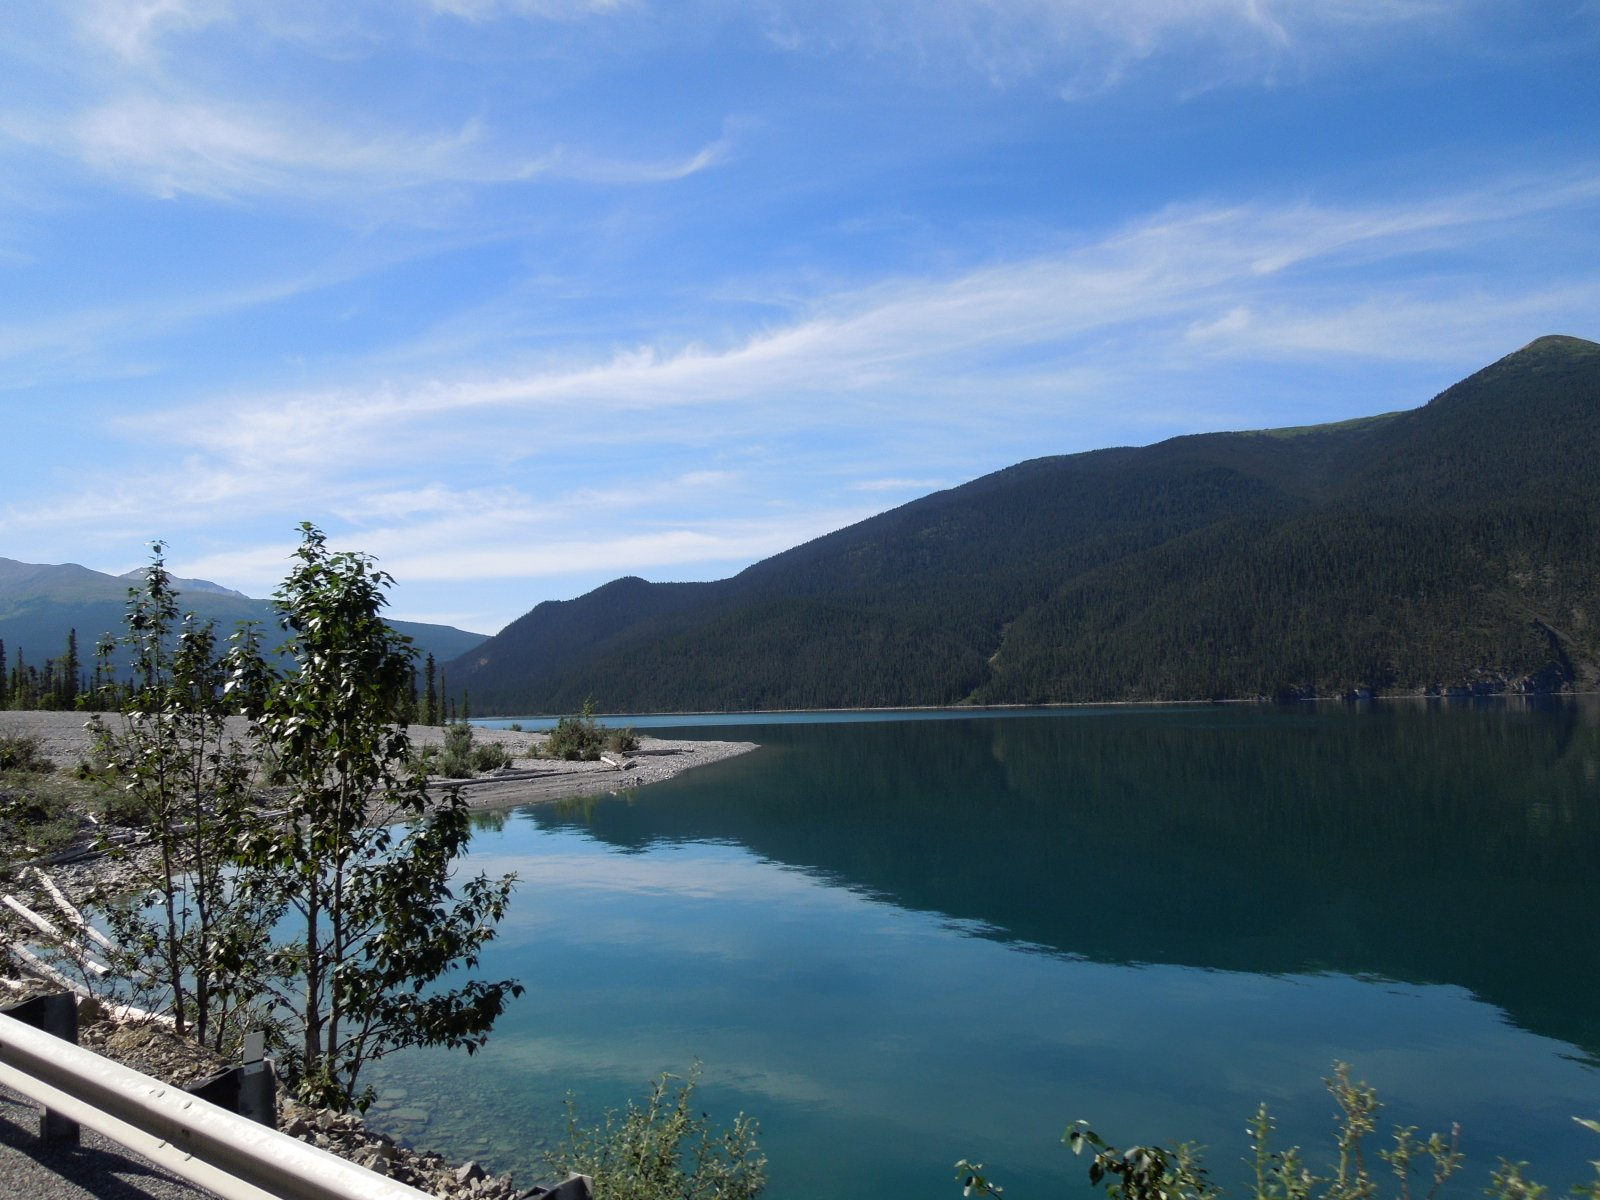 Click image for larger version  Name:Liard Hot Springs to Ft. Nelson to Ft. St. John 103.jpg Views:57 Size:268.0 KB ID:222149